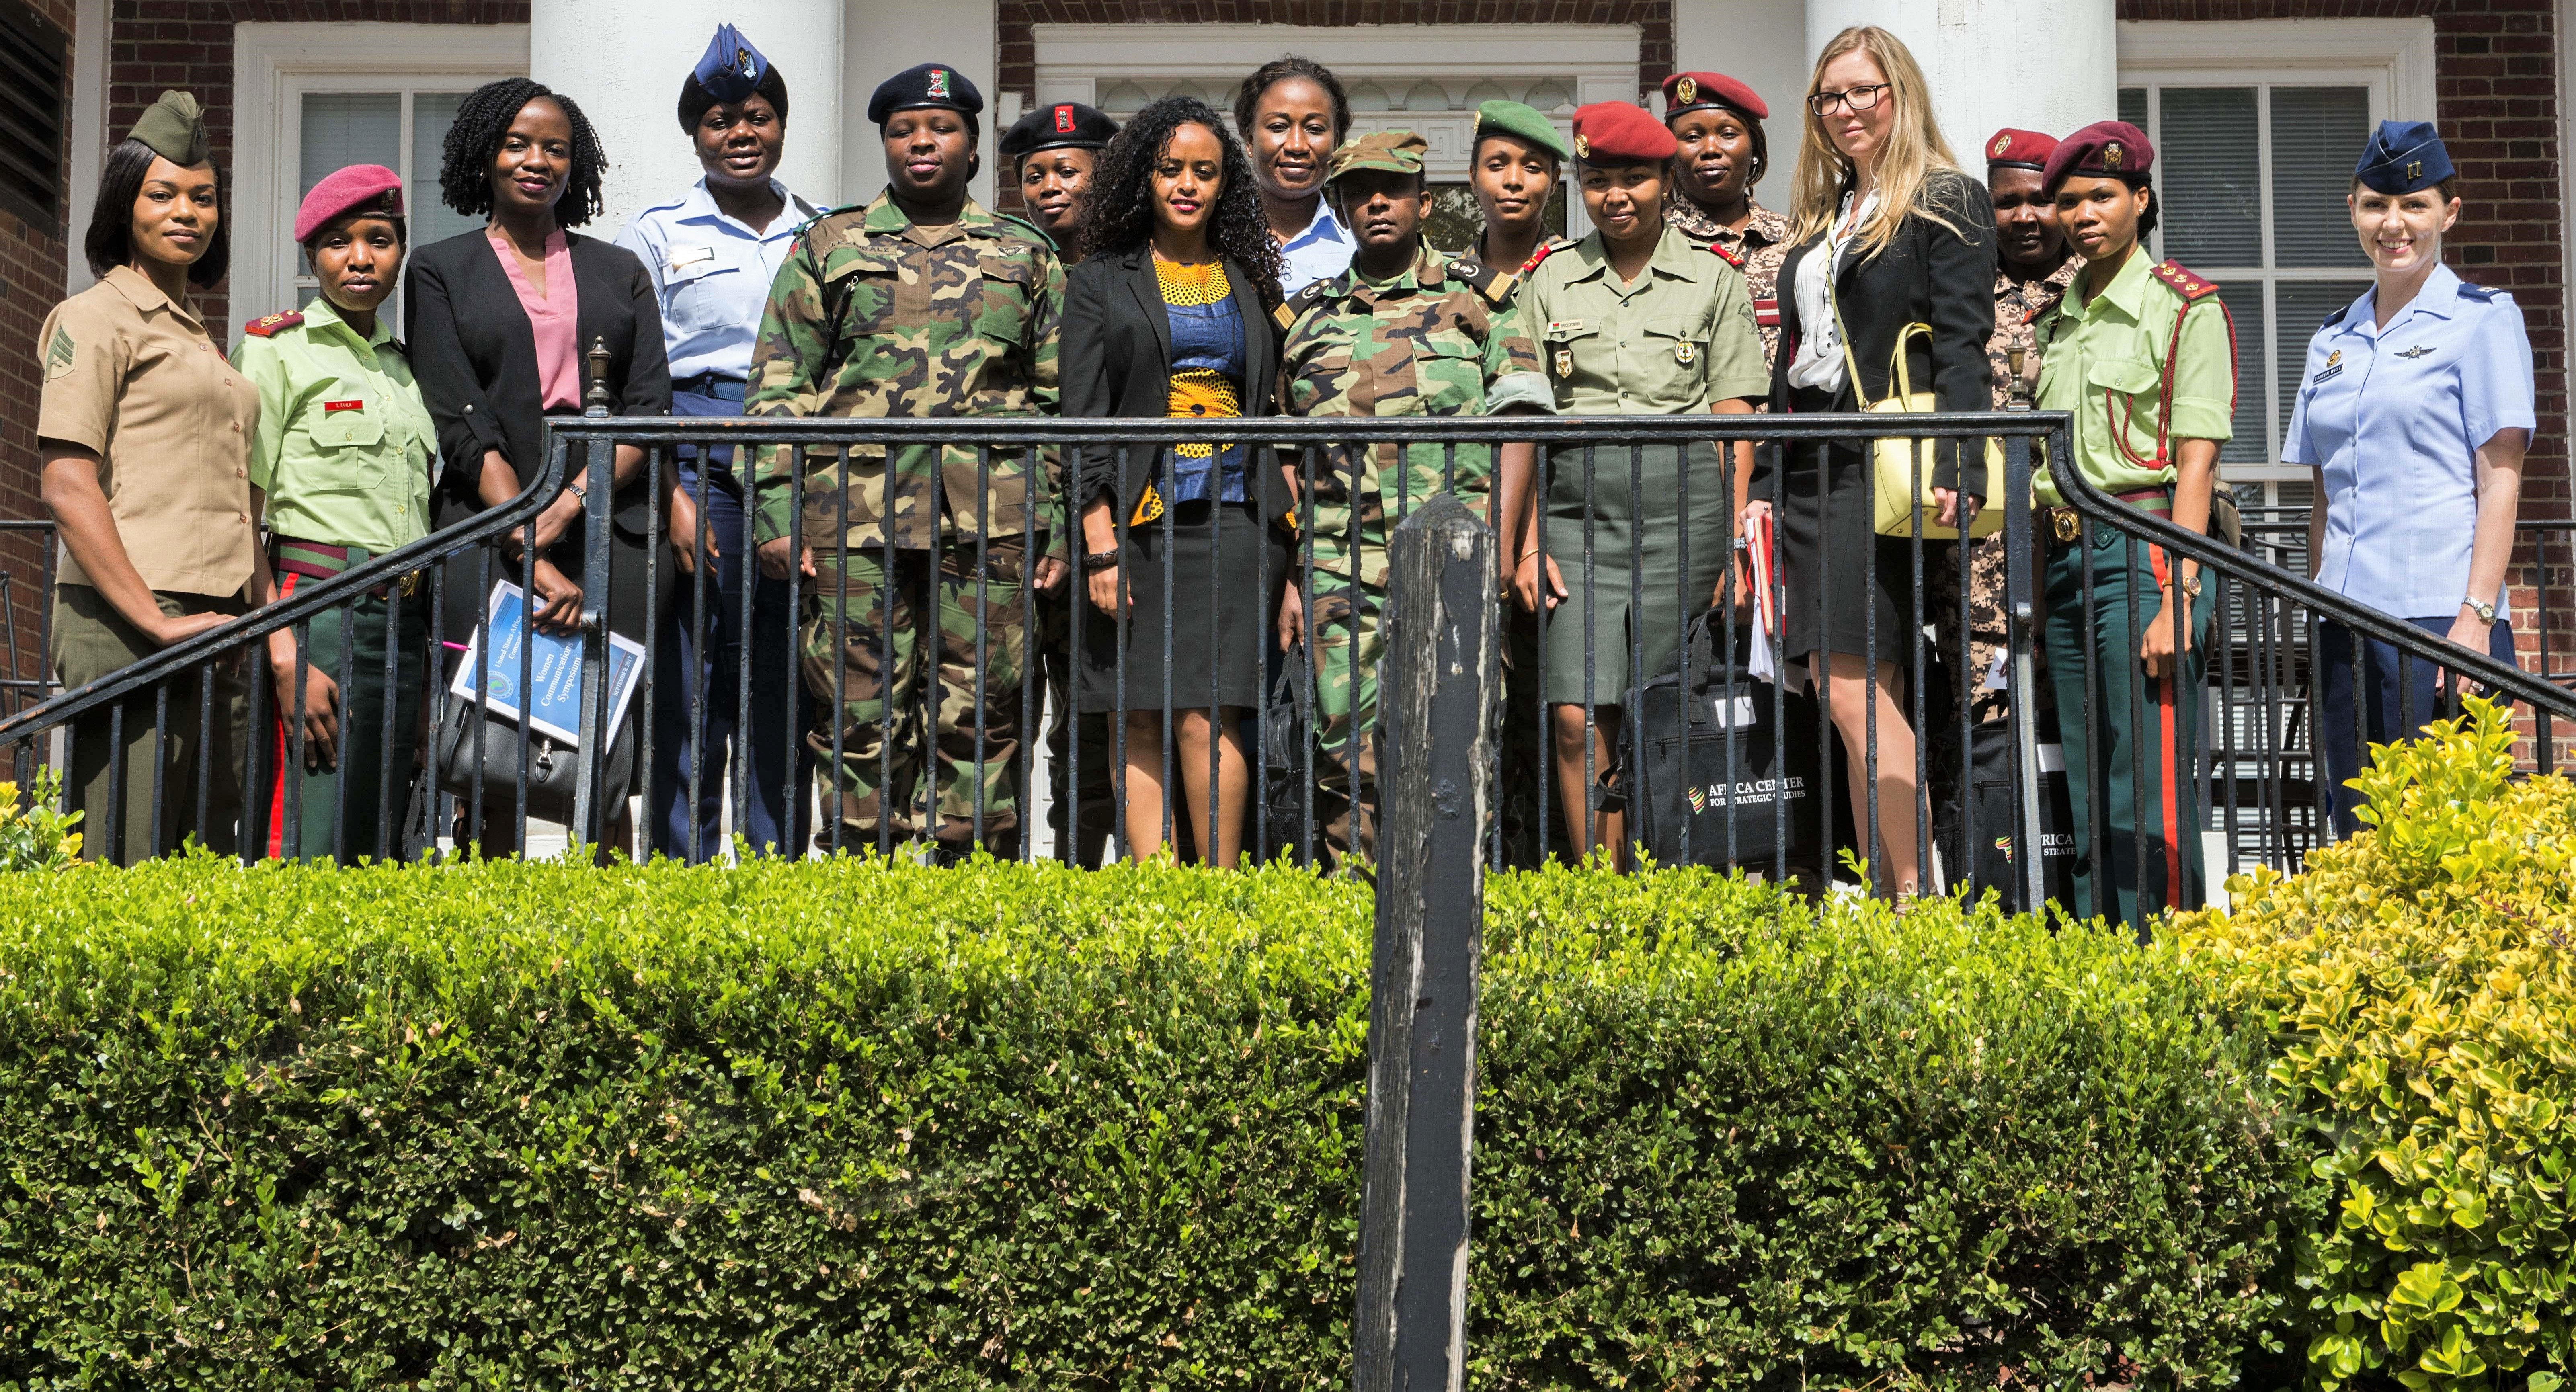 Participants in U.S. Africa Command's Women, Peace and Security forum for female military leaders from seven African nations pose for a photo at National Defense University in Washington, Sept. 19, 2017. DoD photo by Marine Corps Staff Sgt. Ben Flores